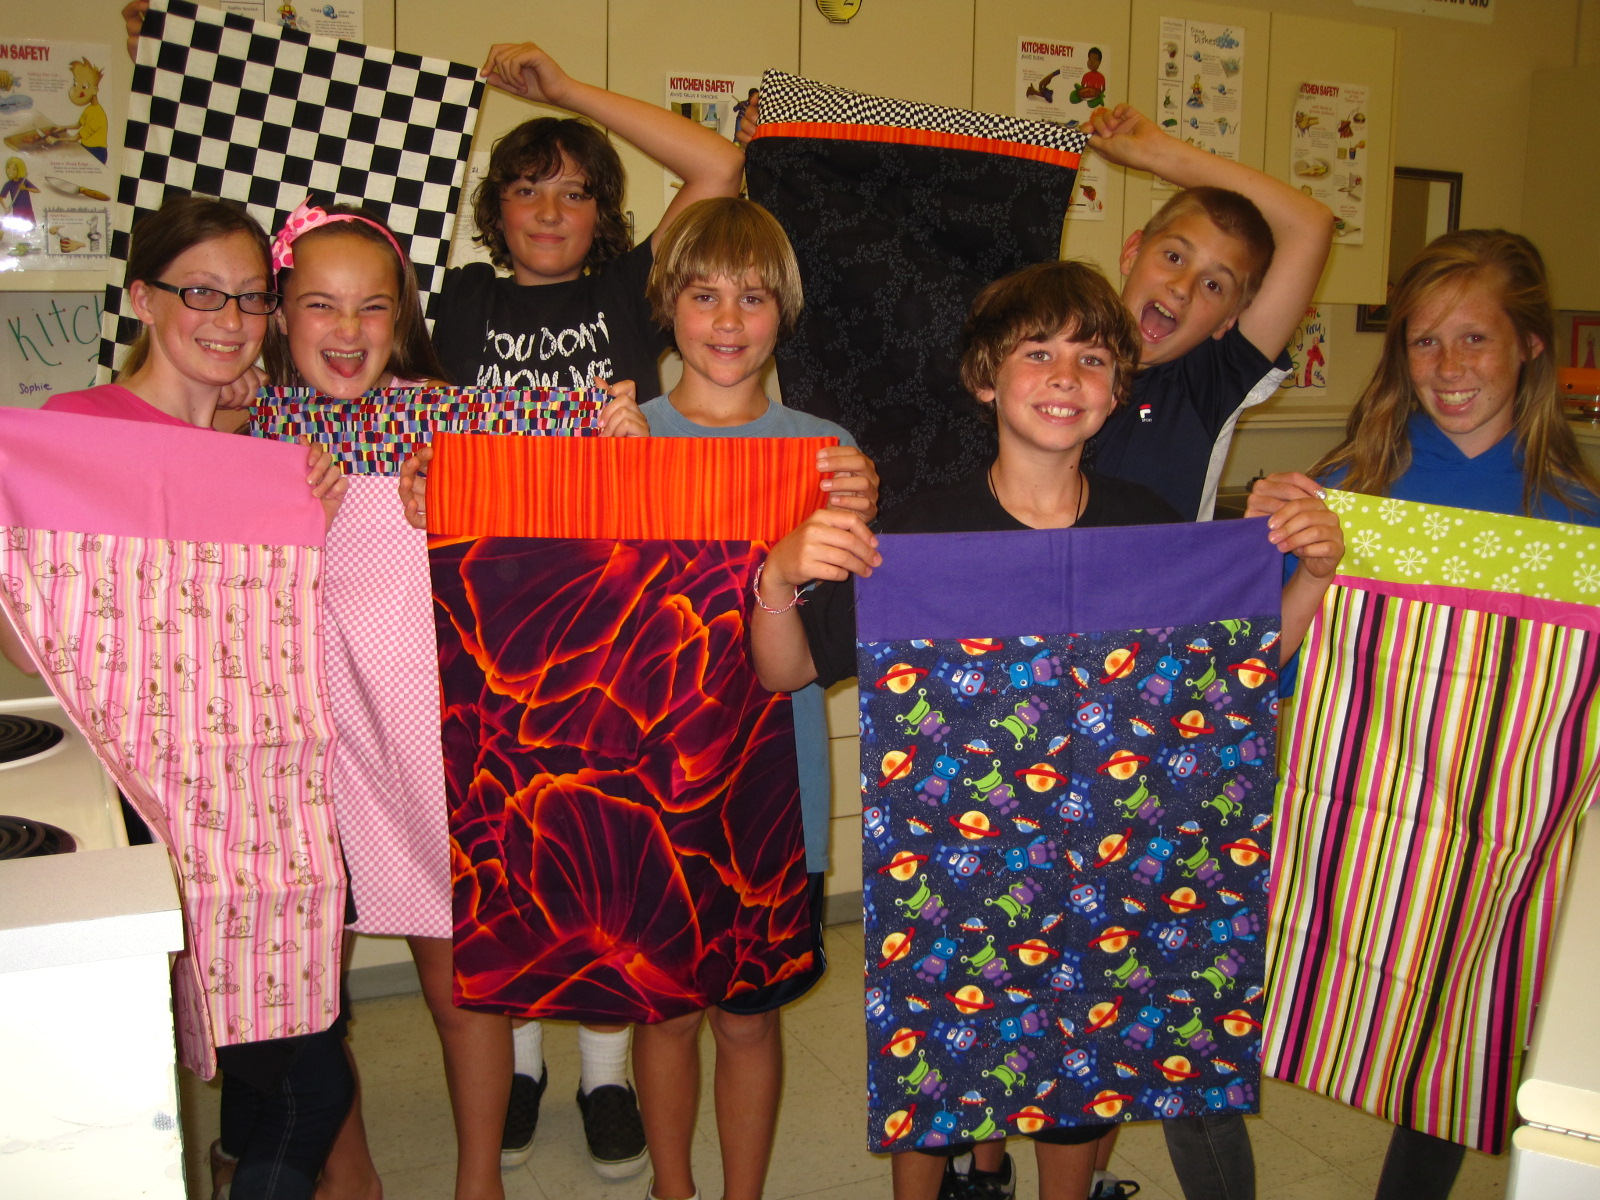 Pillowcases - Well Done!